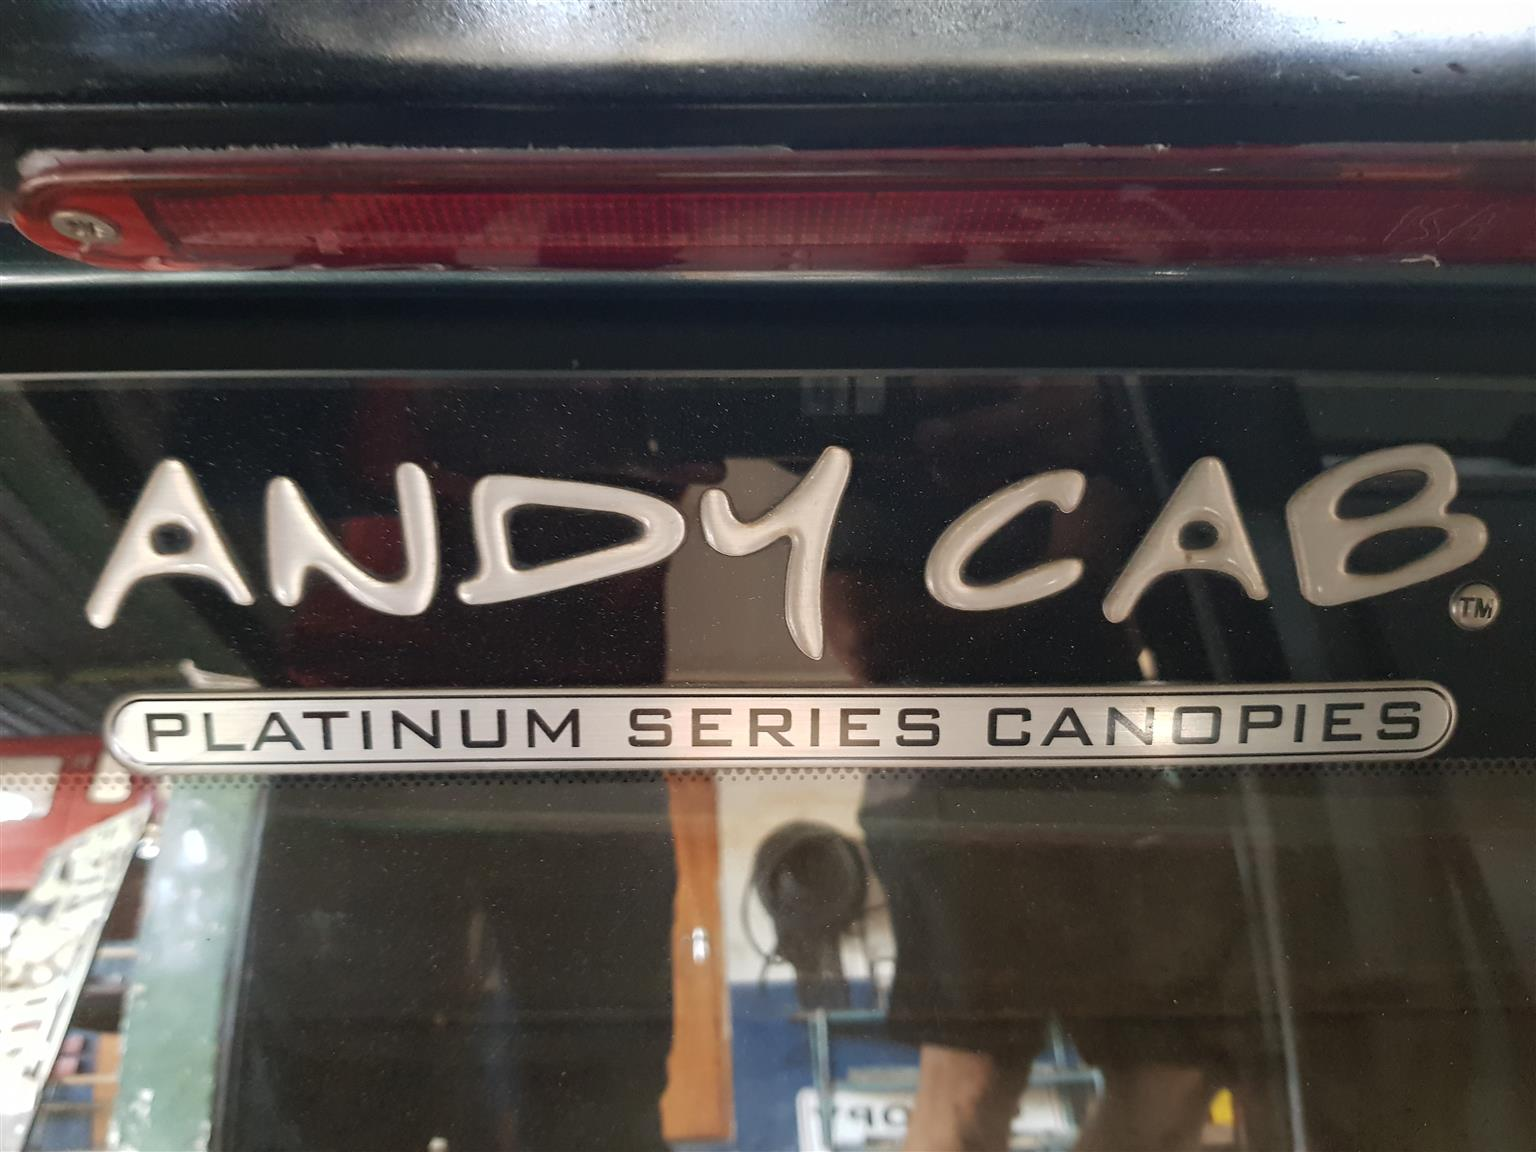 New Andycab stock arrived